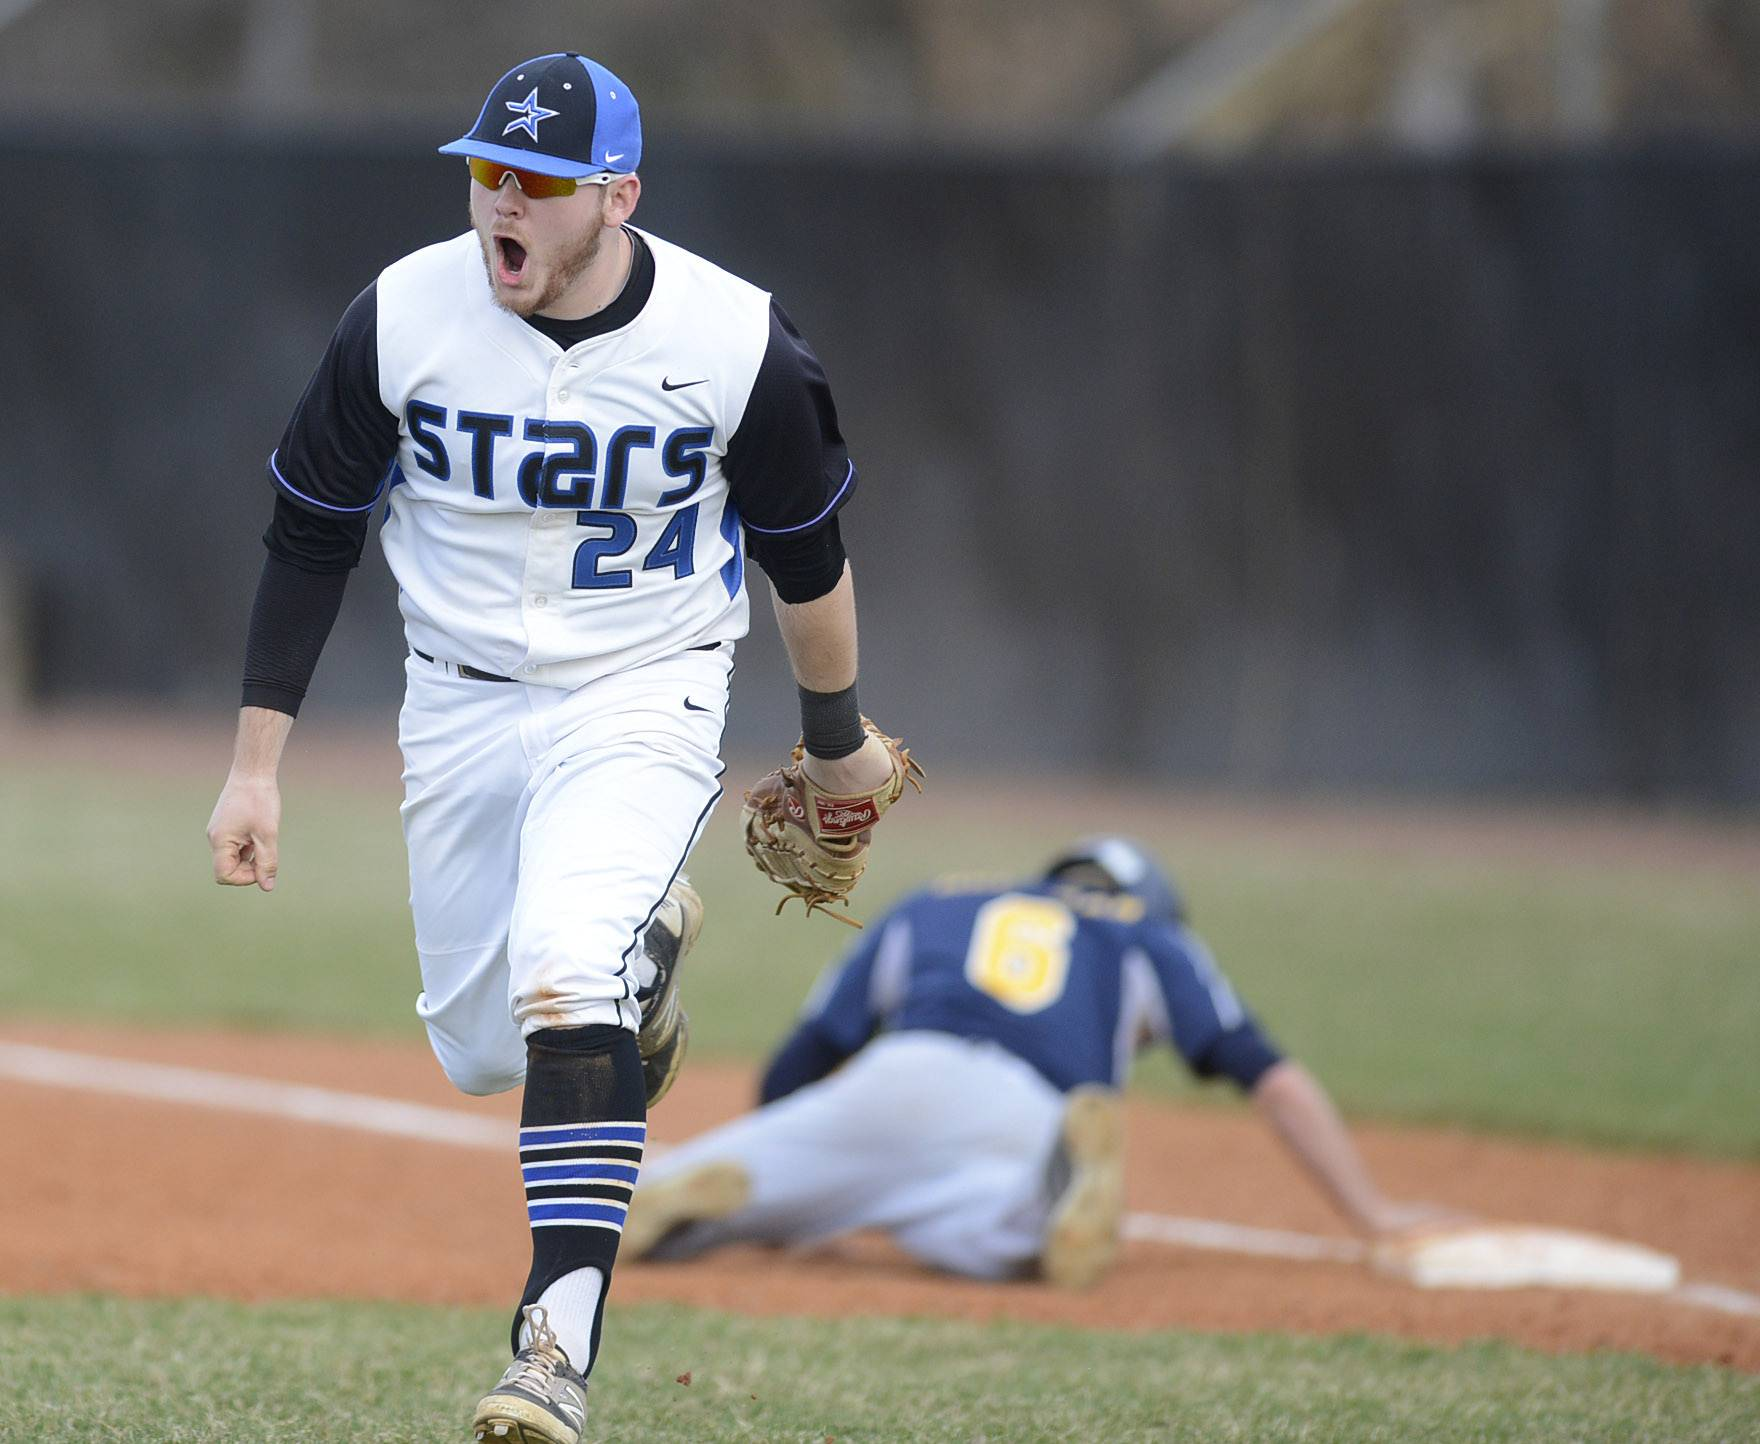 St. Charles North's Jack Dennis heads back to the dugout celebrating tagging out Neuqua Valley's Zach Herdman at first in the second inning on Friday, April 11.